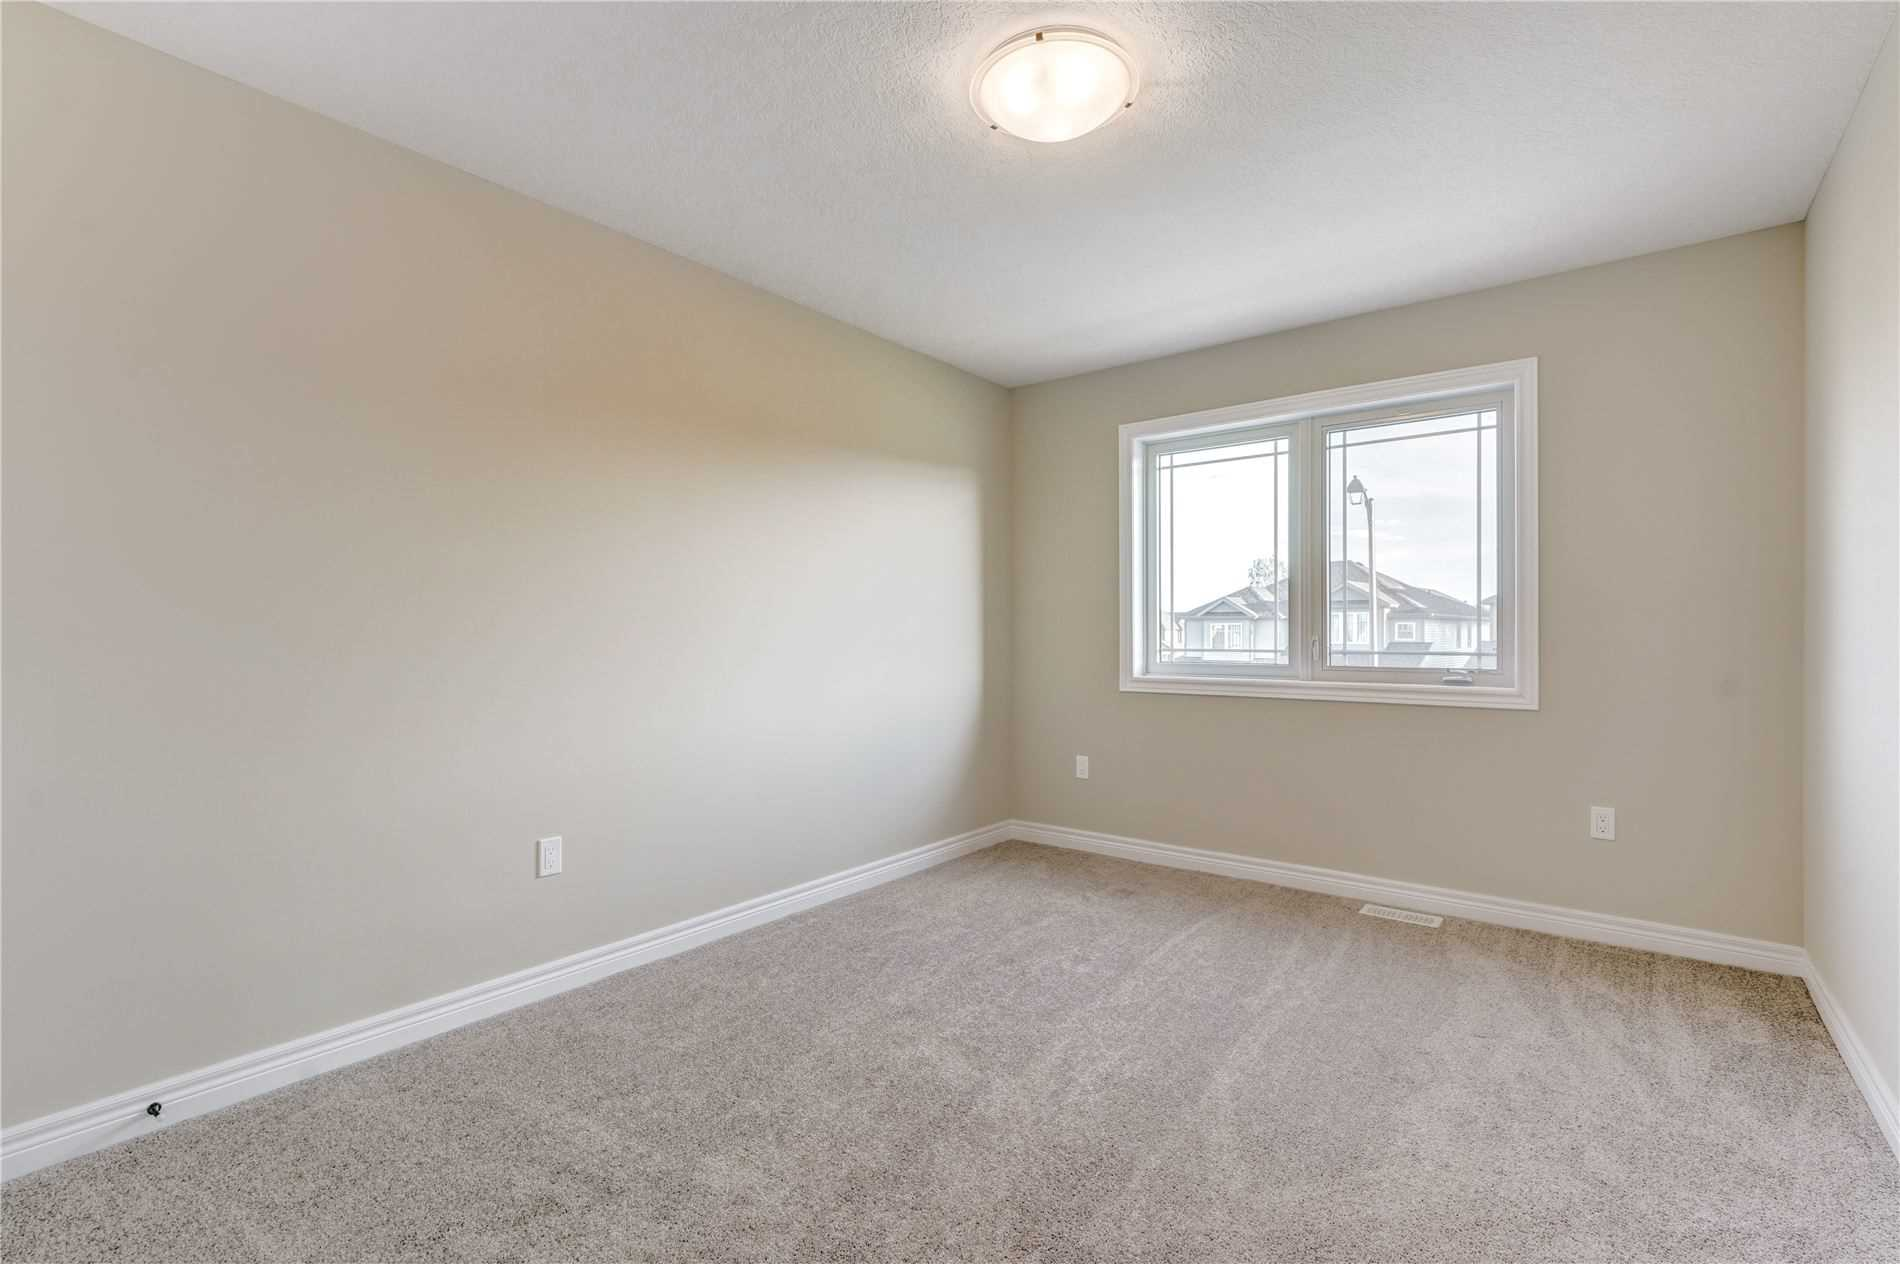 Image 6 of 19 showing inside of 4 Bedroom Detached 2-Storey house for sale at 4 Stuckey Lane, East Luther Grand Valley L0N1G0